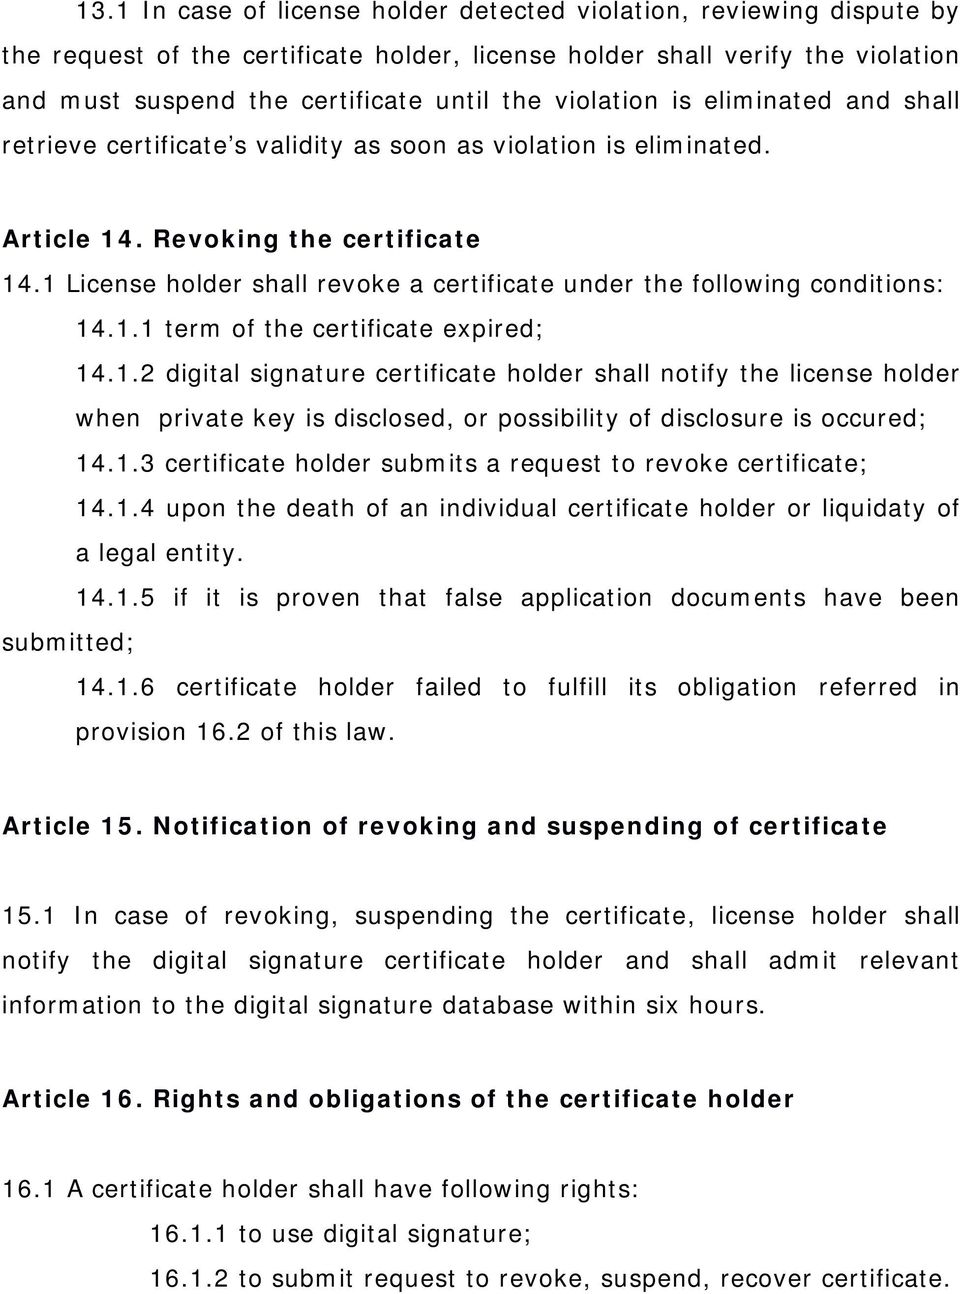 1 License holder shall revoke a certificate under the following conditions: 14.1.1 term of the certificate expired; 14.1.2 digital signature certificate holder shall notify the license holder when private key is disclosed, or possibility of disclosure is occured; 14.